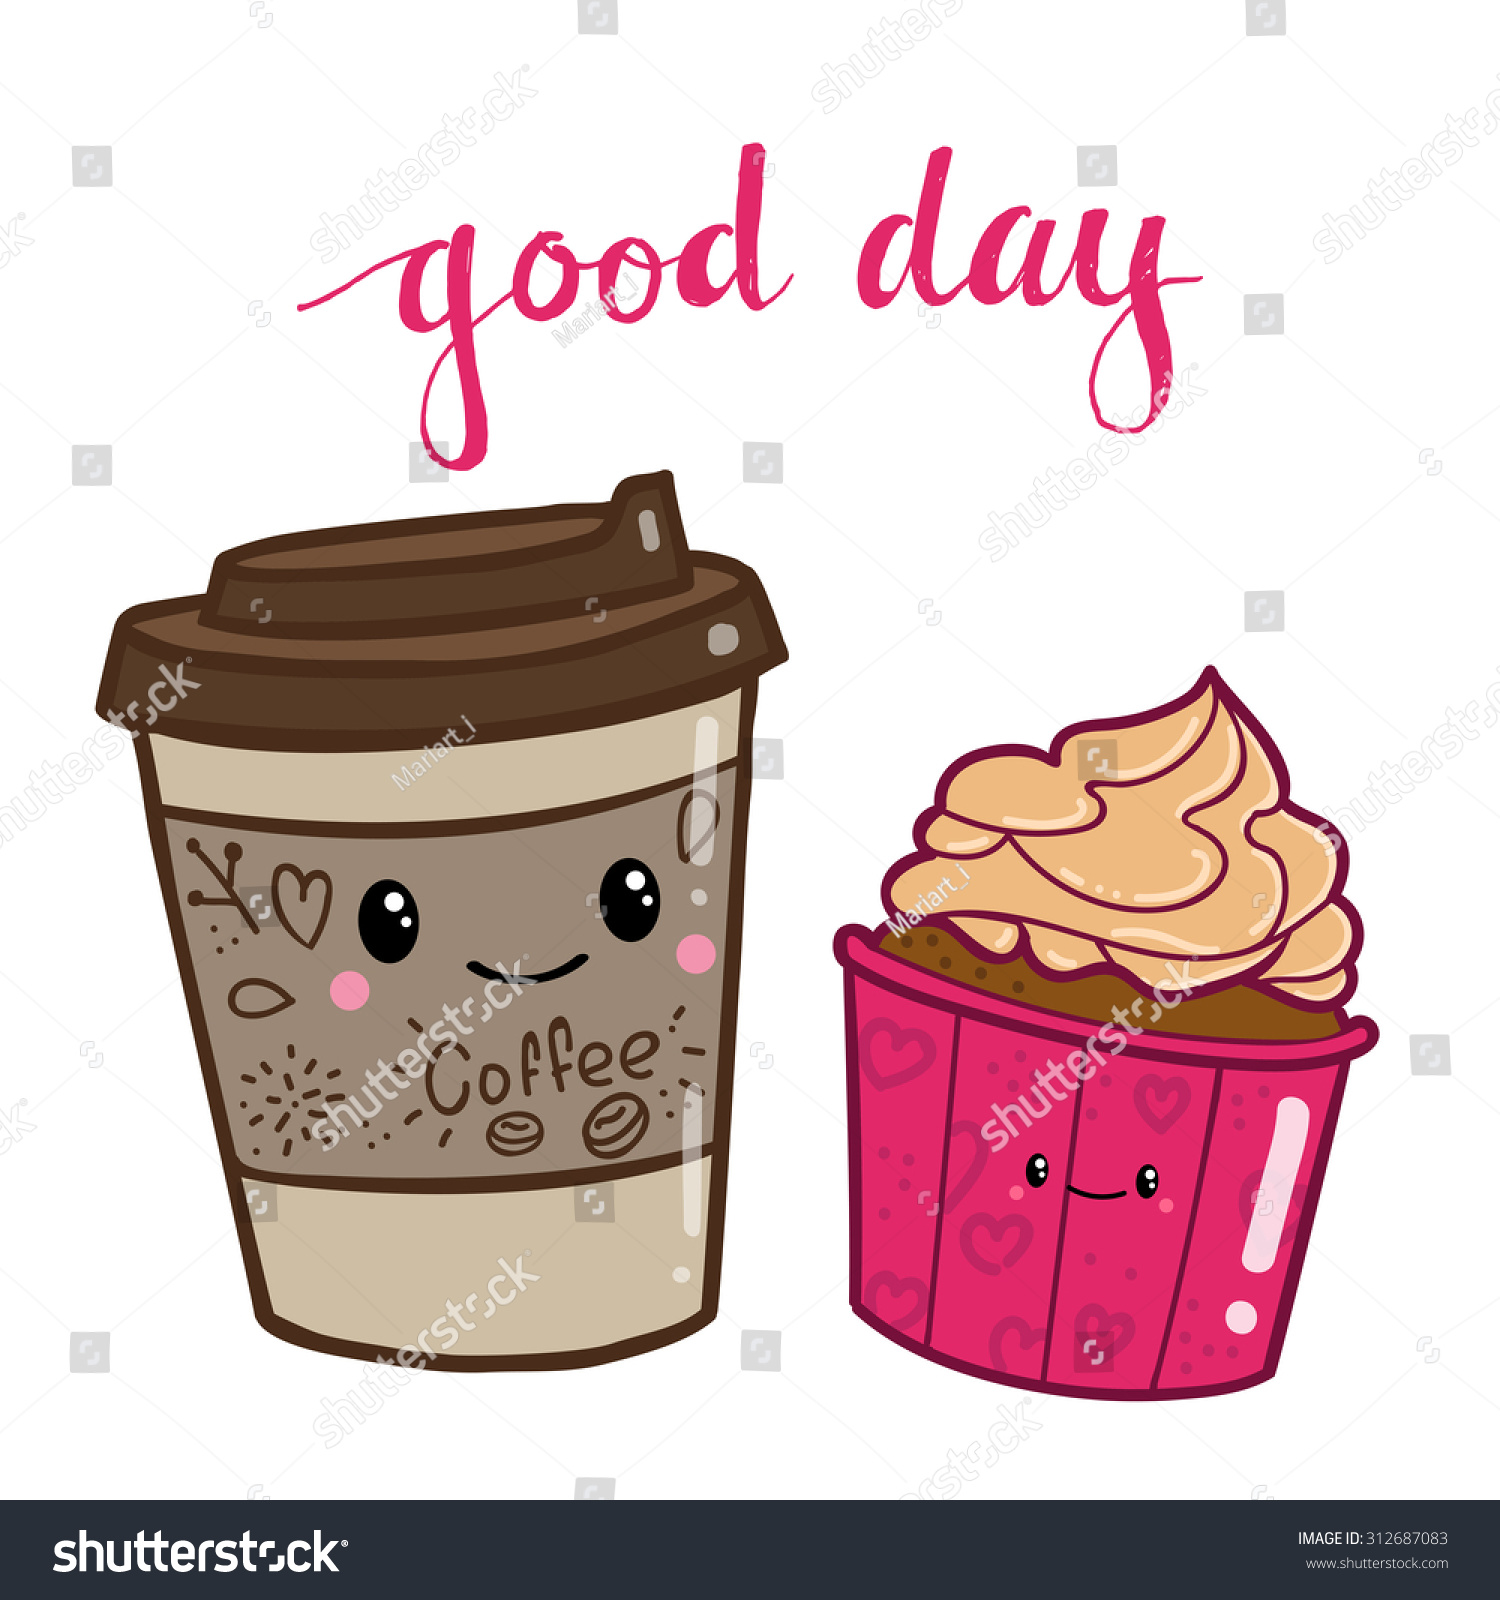 Cute Cartoon Cake Images : Cute Doodle Cartoon Hand Drawn Coffee Stock Vector ...